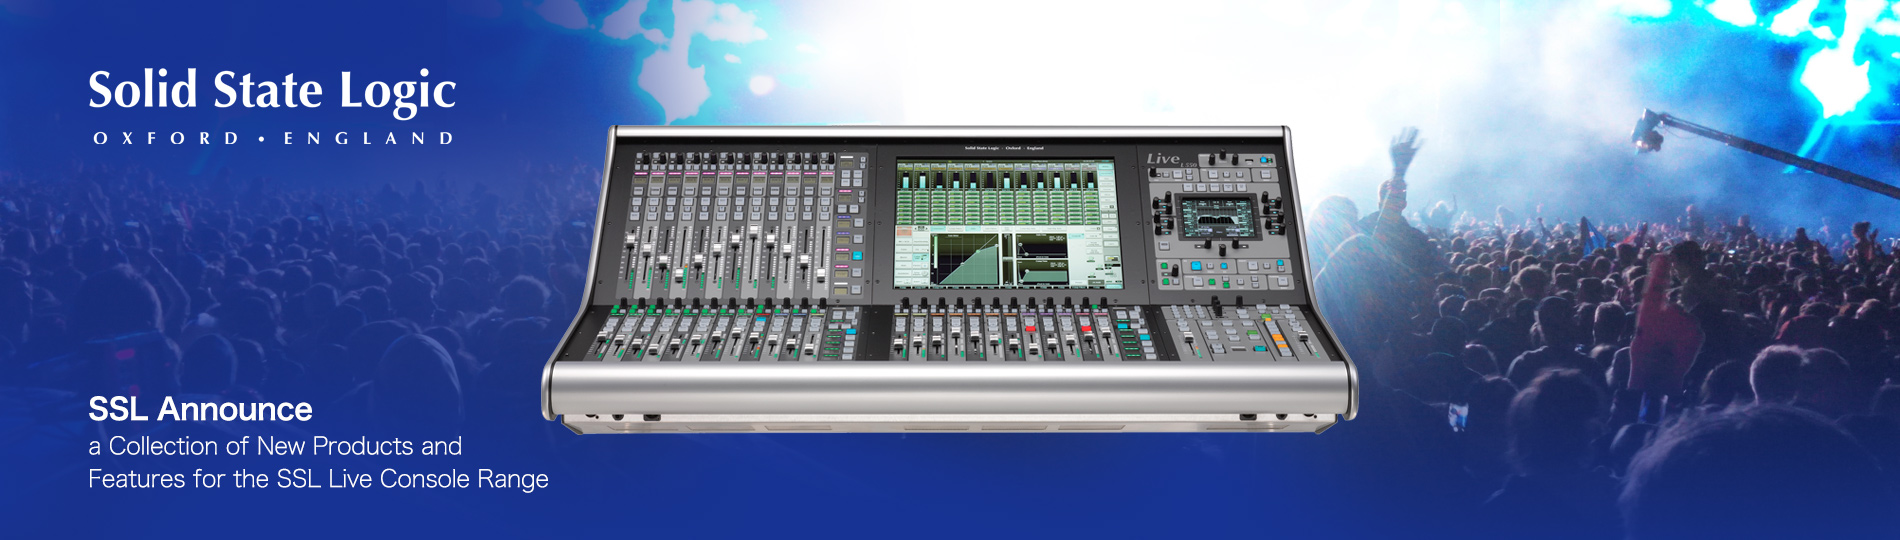 SSL L550 - a Collection of New Products and Features for the SSL Live Console Range